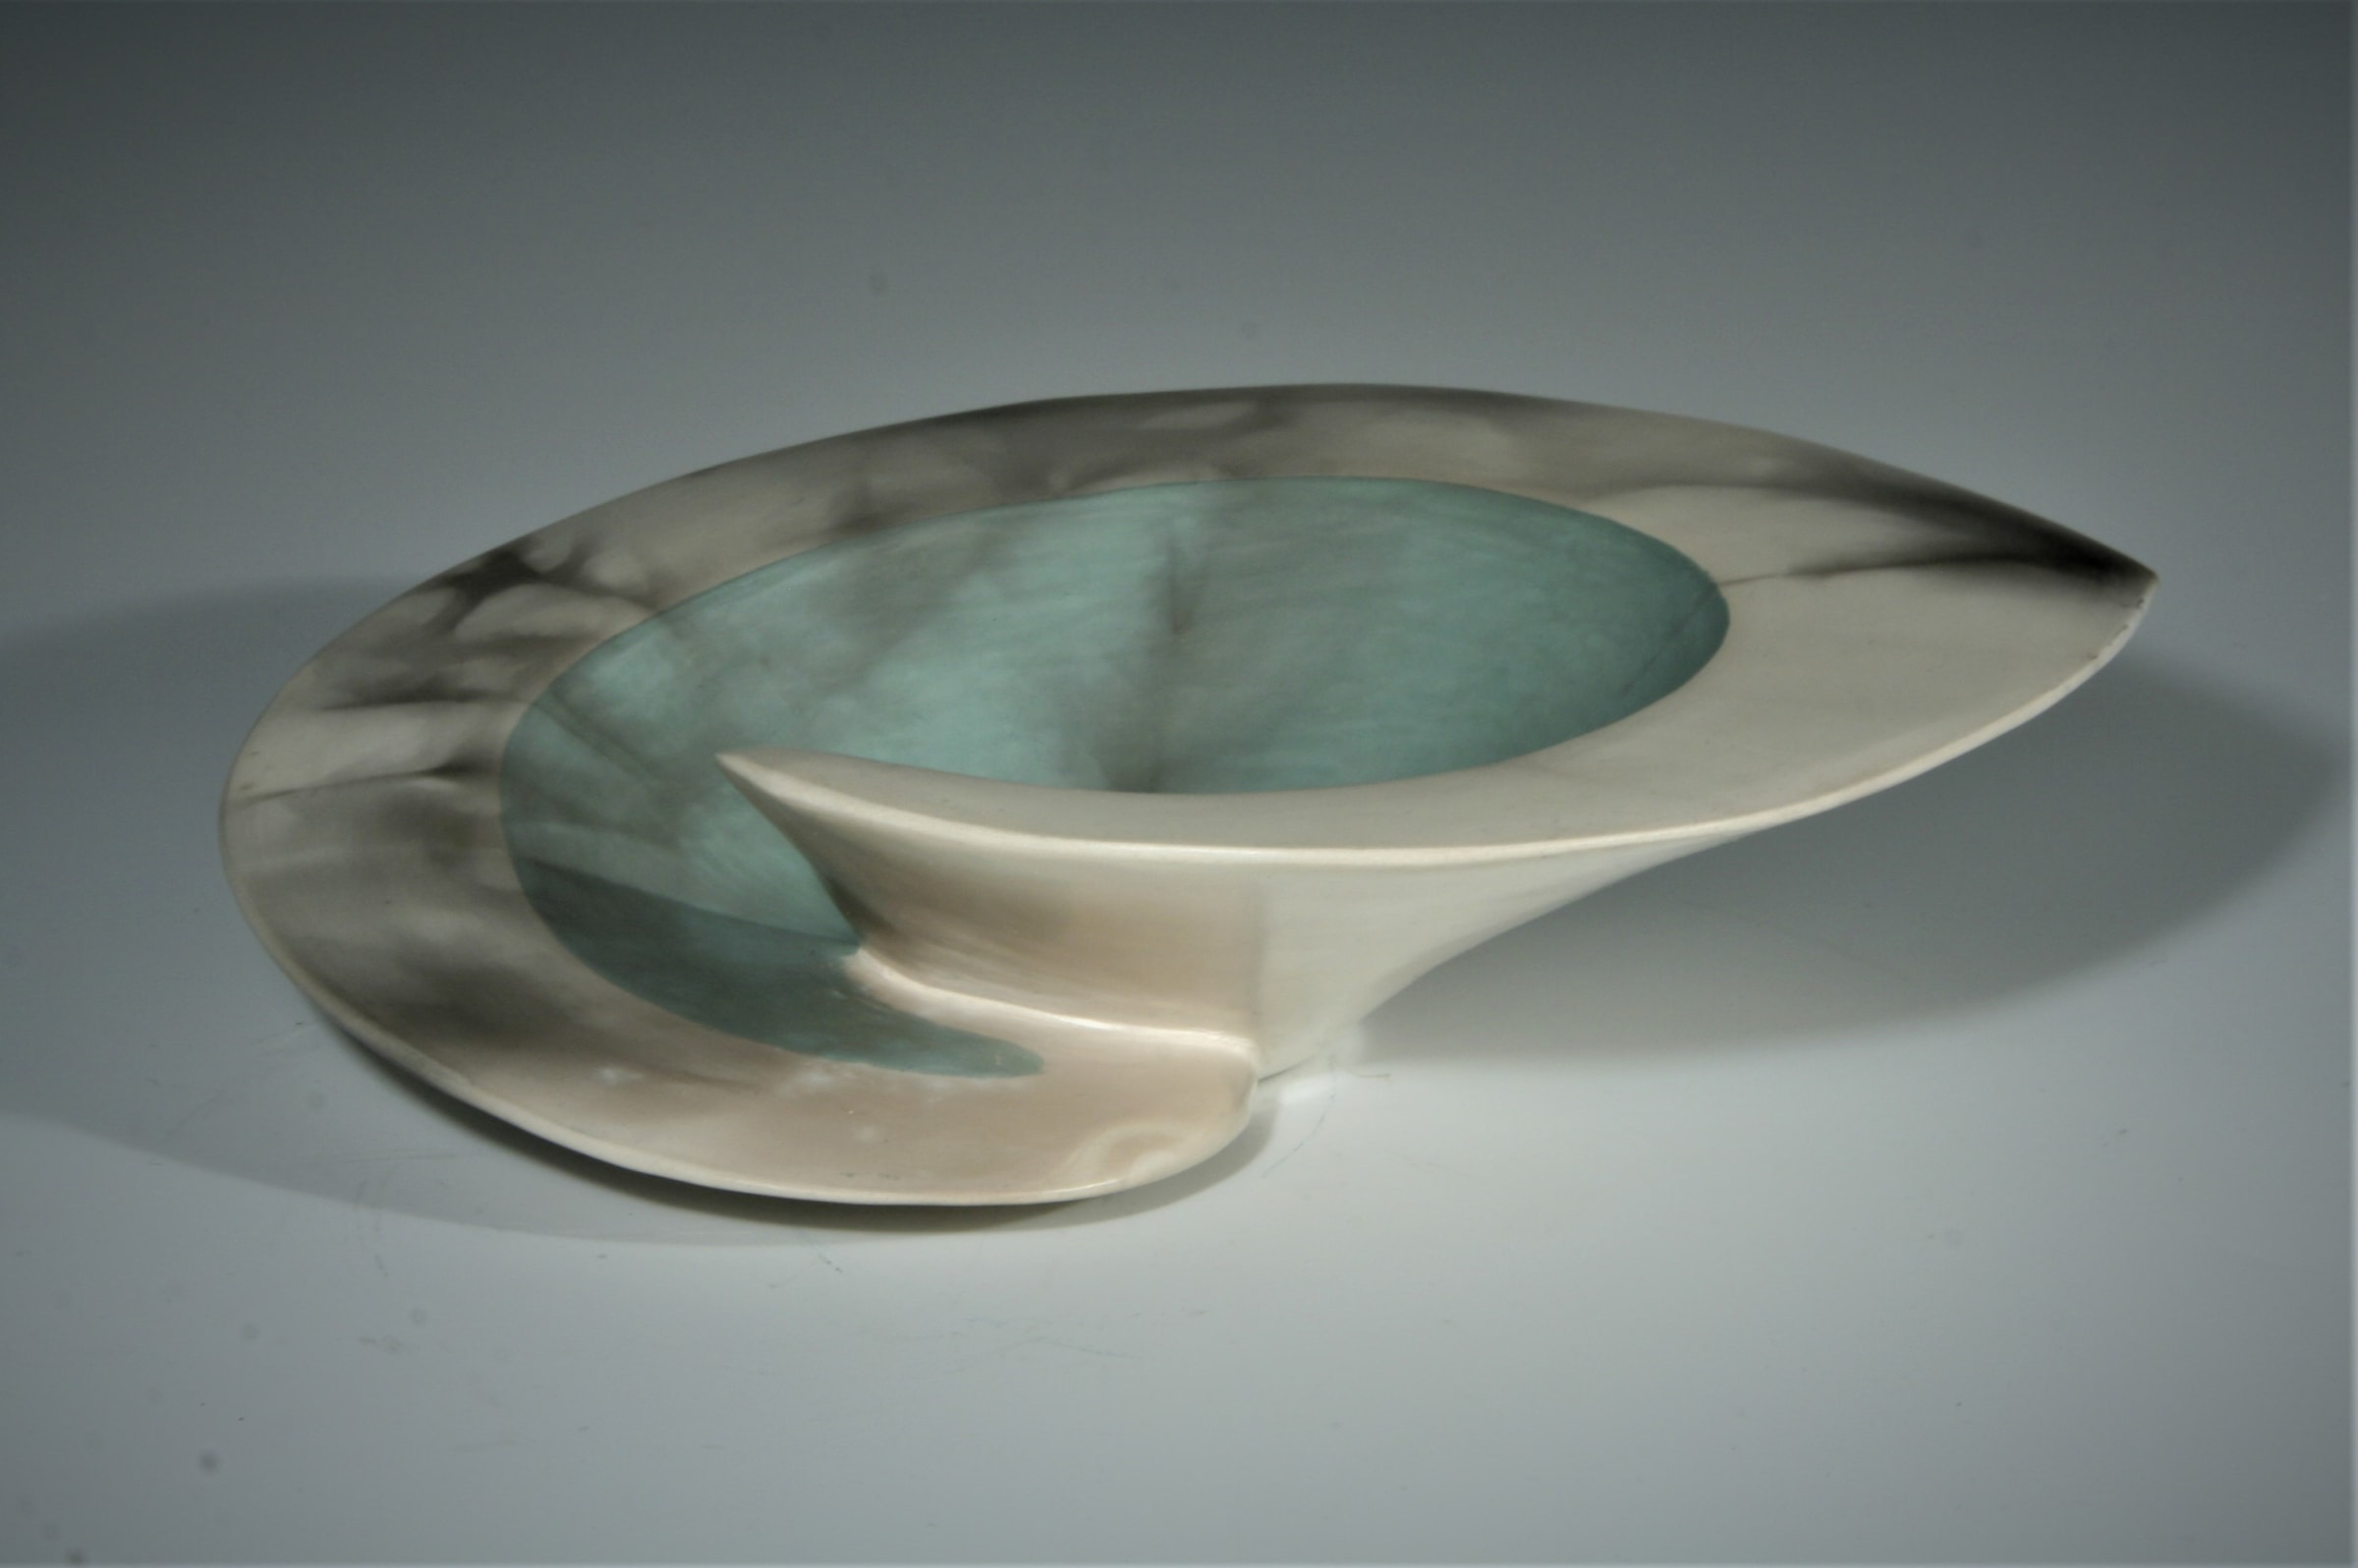 """<span class=""""link fancybox-details-link""""><a href=""""/artists/38-antonia-salmon/works/5695-antonia-salmon-green-dervish-bowl-iii-2018/"""">View Detail Page</a></span><div class=""""artist""""><strong>Antonia Salmon</strong></div> b. 1959 <div class=""""title""""><em>Green Dervish Bowl III</em>, 2018</div> <div class=""""signed_and_dated"""">stamped AS</div> <div class=""""medium"""">Ceramic</div><div class=""""copyright_line"""">£ 21 x 10 Months, OwnArt 0% APR</div>"""